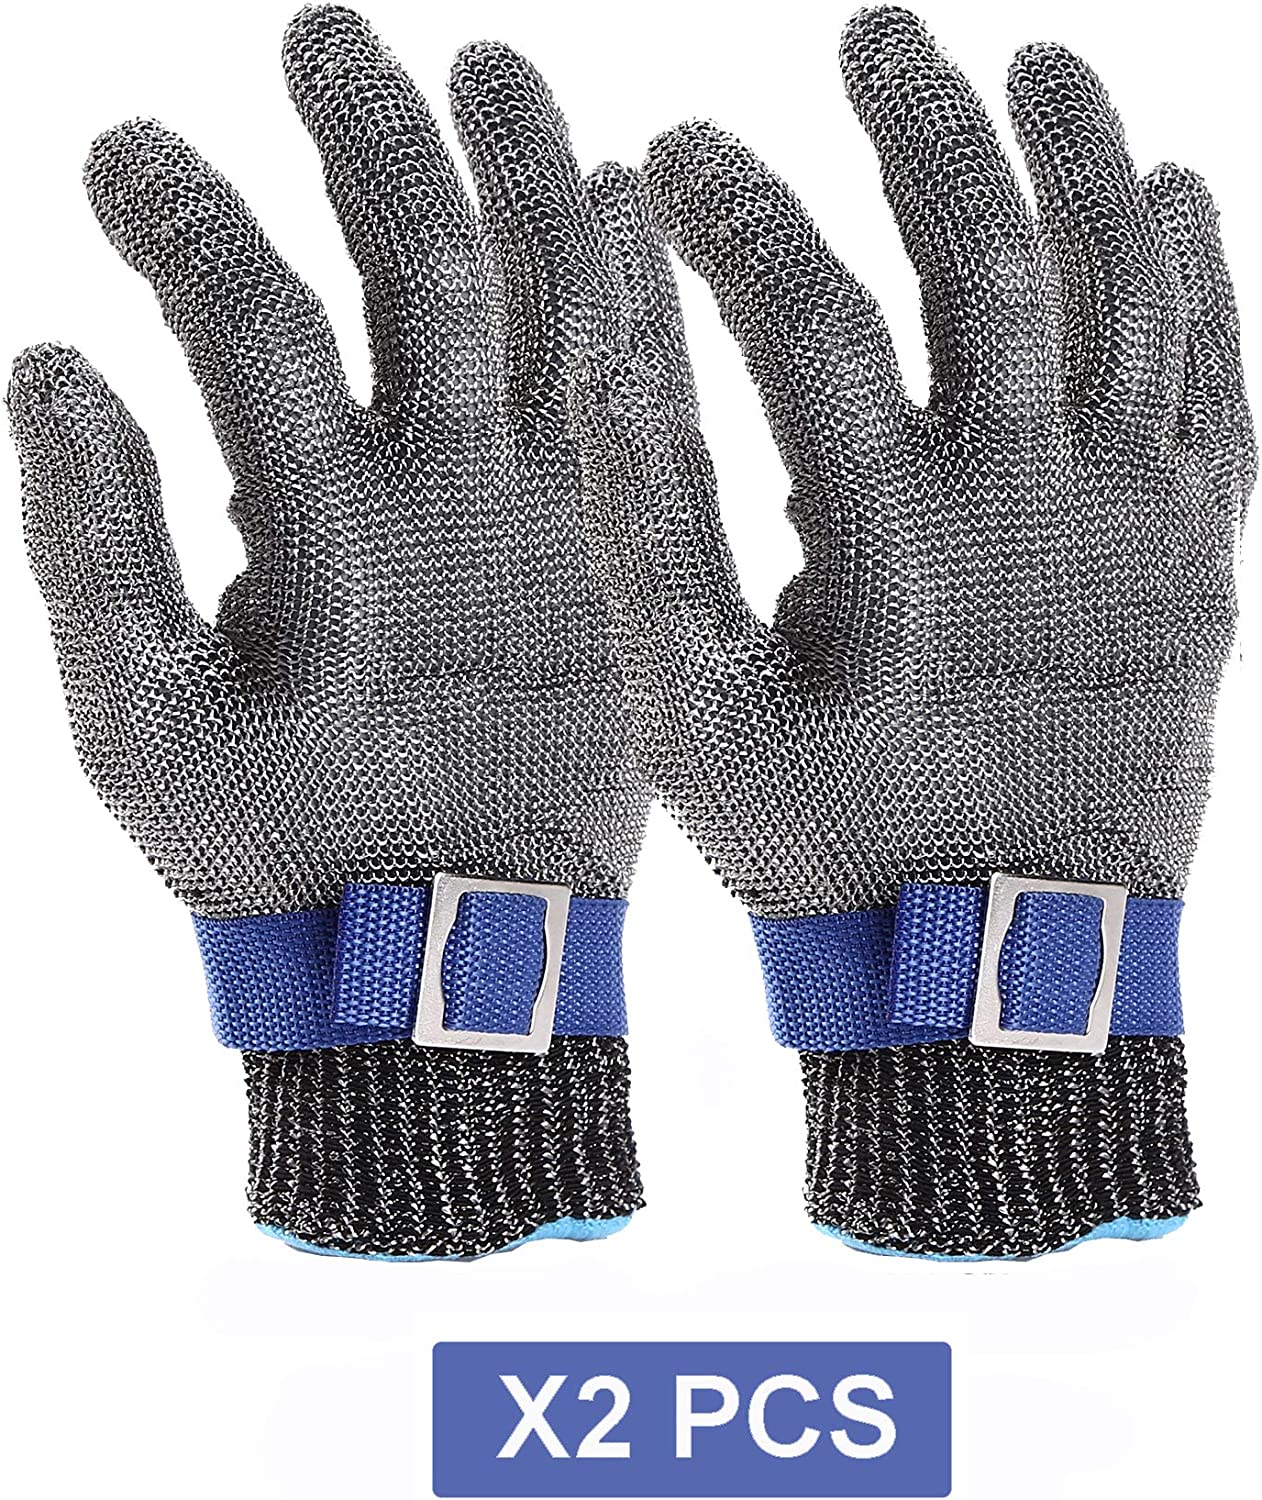 Cut Resistant Gloves-Stainless Steel Wire Metal Mesh Butcher Safety Work Gloves for Meat Cutting, fishing (M 2PCS)